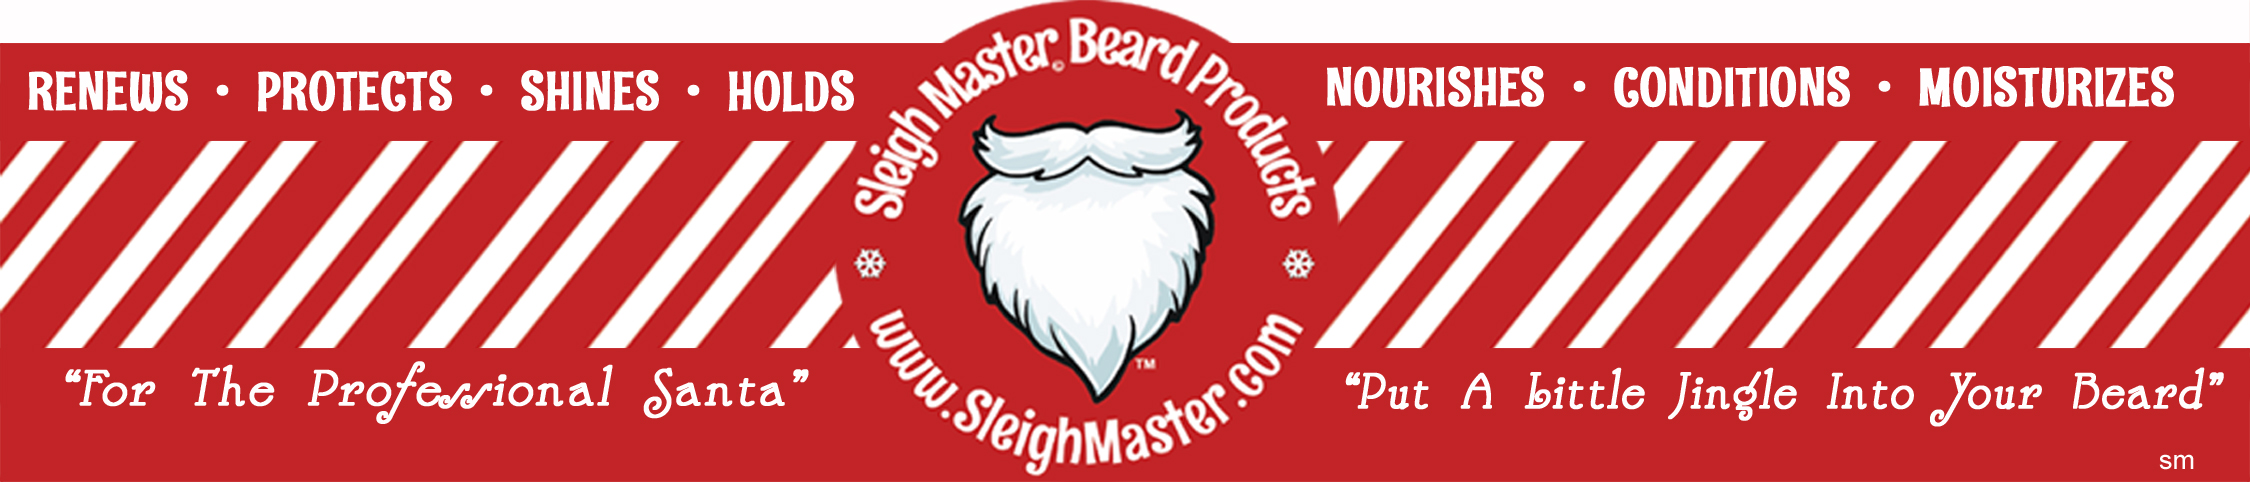 SLEIGH MASTER BEARD PRODUCTS